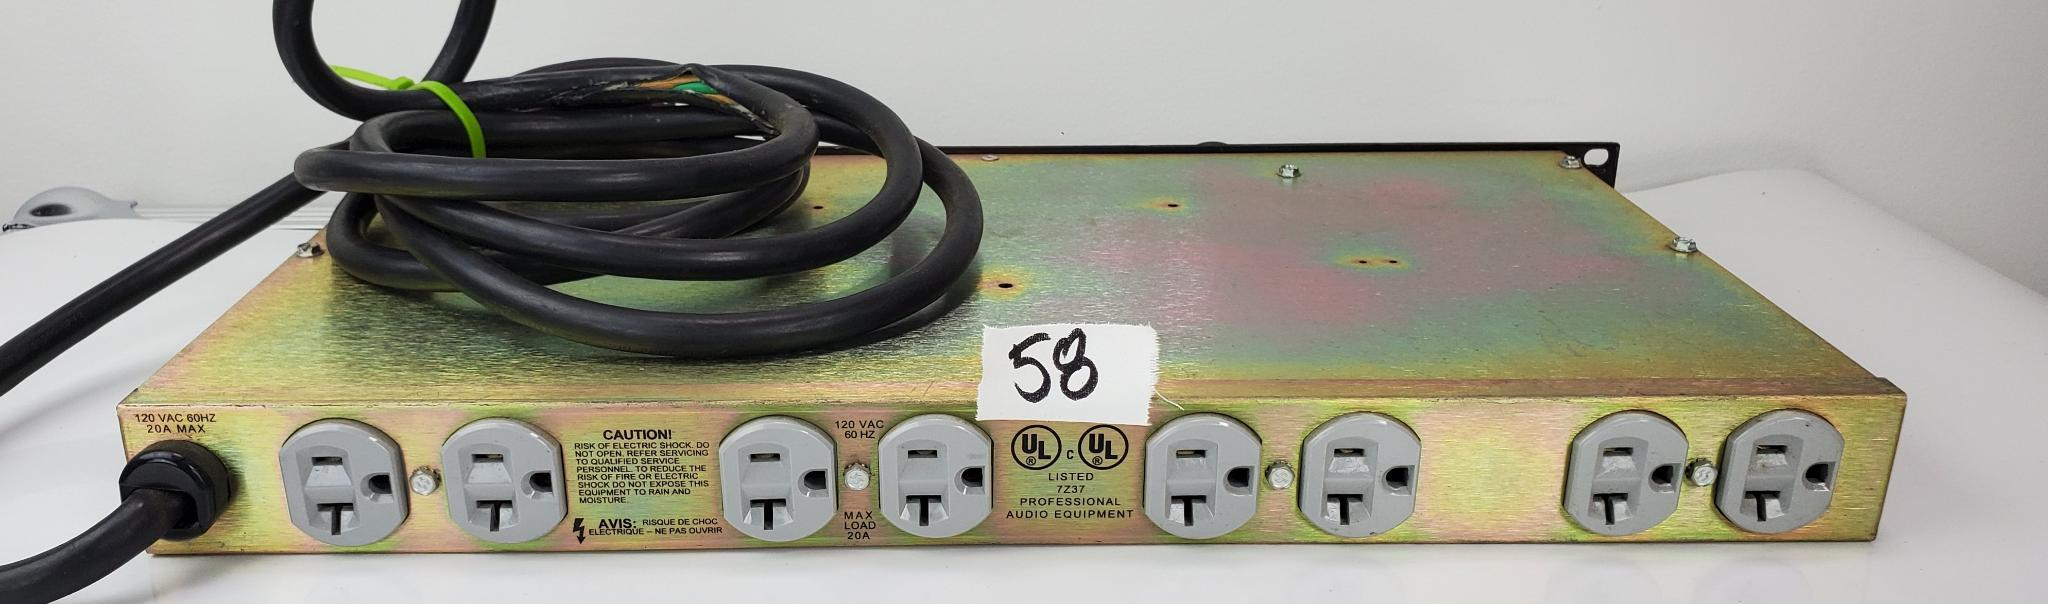 20 Amp Power Conditioner with Pull-out Lights, USB Port, and Voltmeter